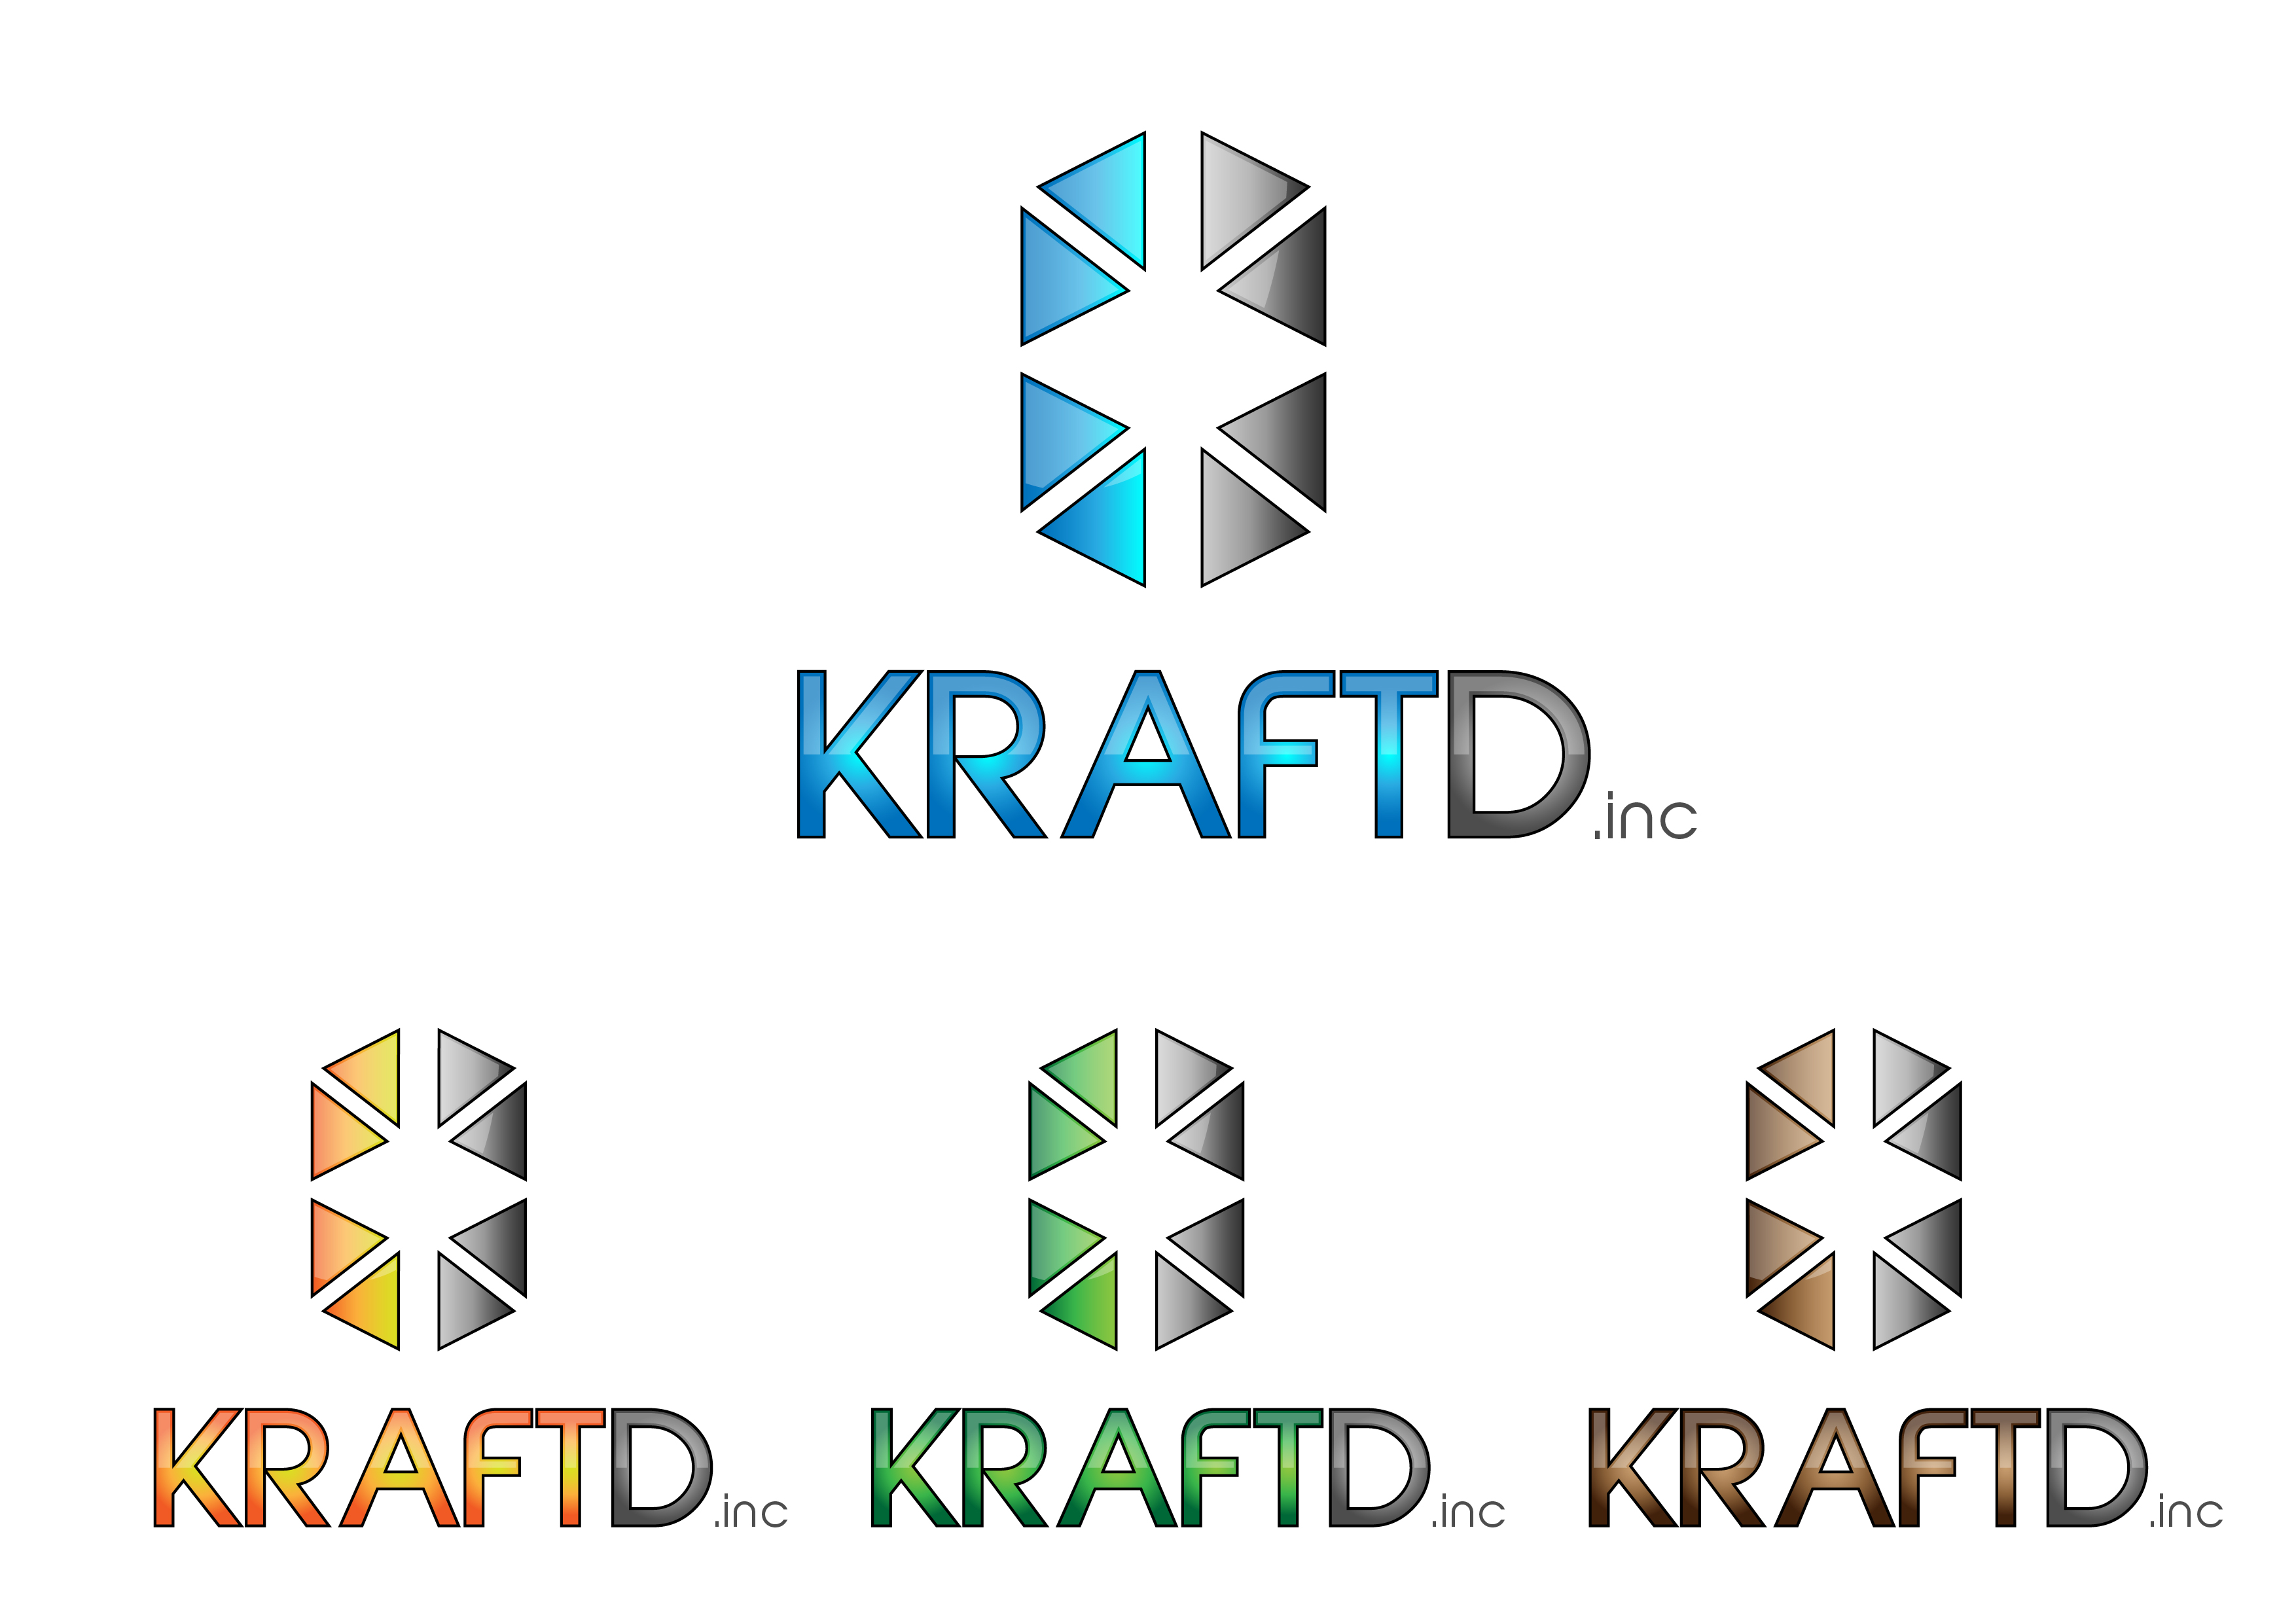 Logo Design by 3draw - Entry No. 457 in the Logo Design Contest Unique Logo Design Wanted for Kraft D Inc.